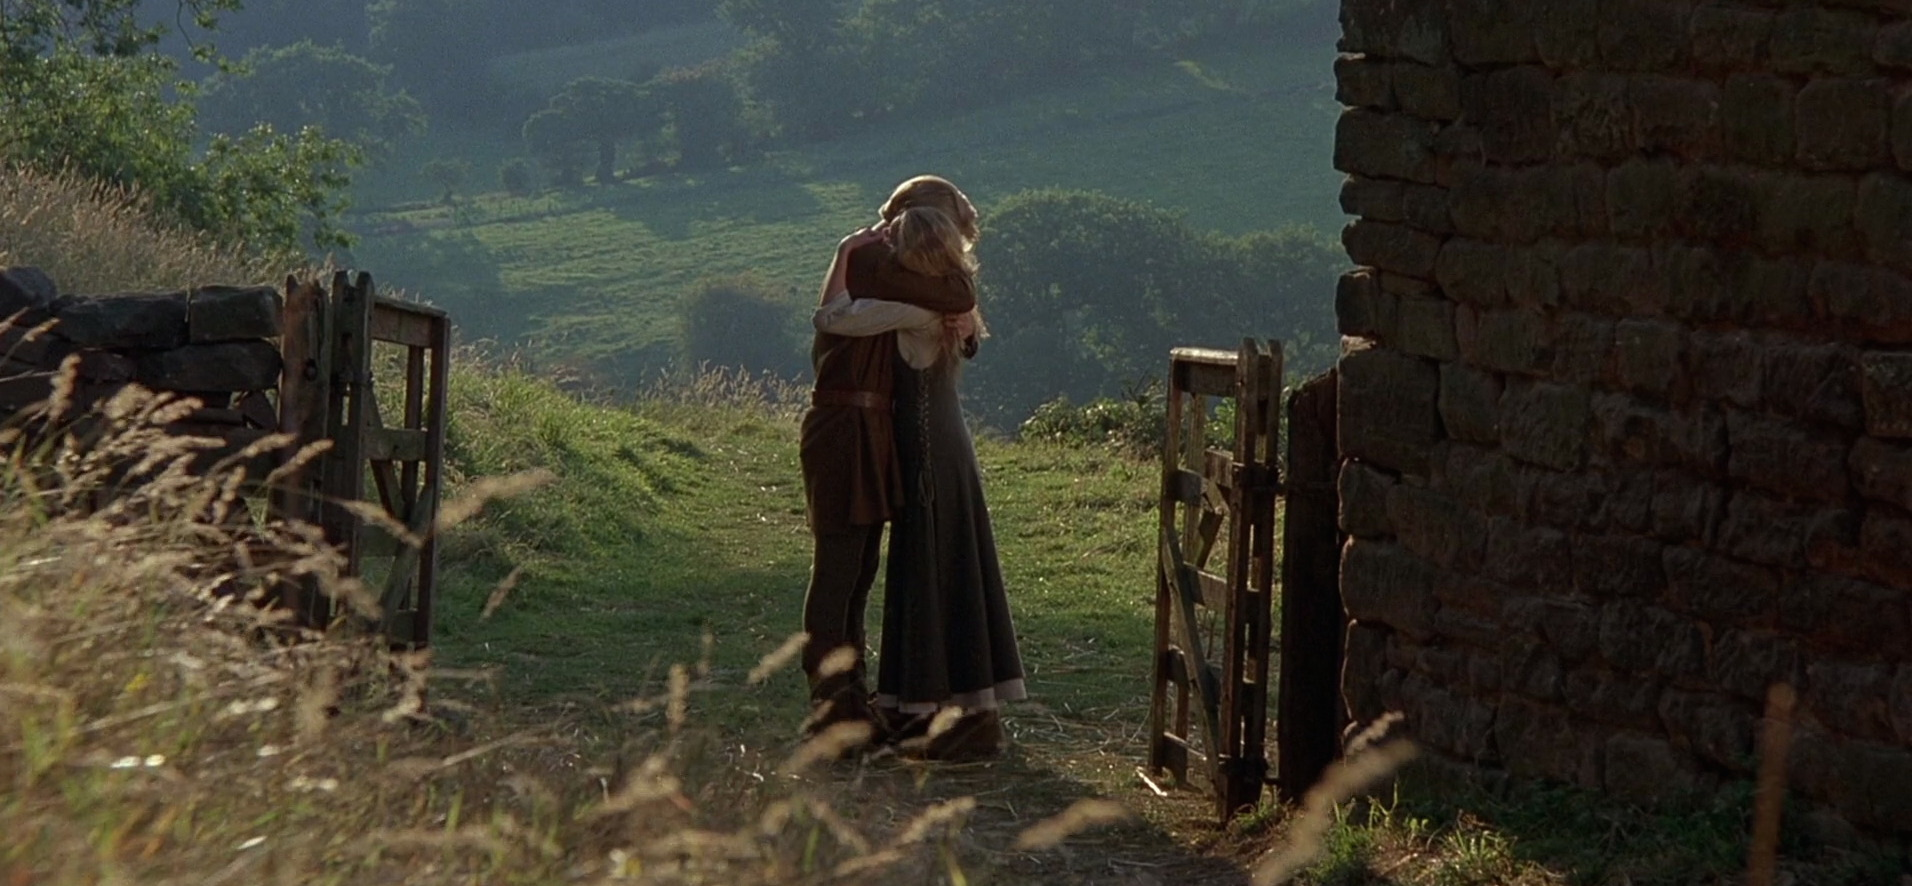 princess bride screenshot.jpg